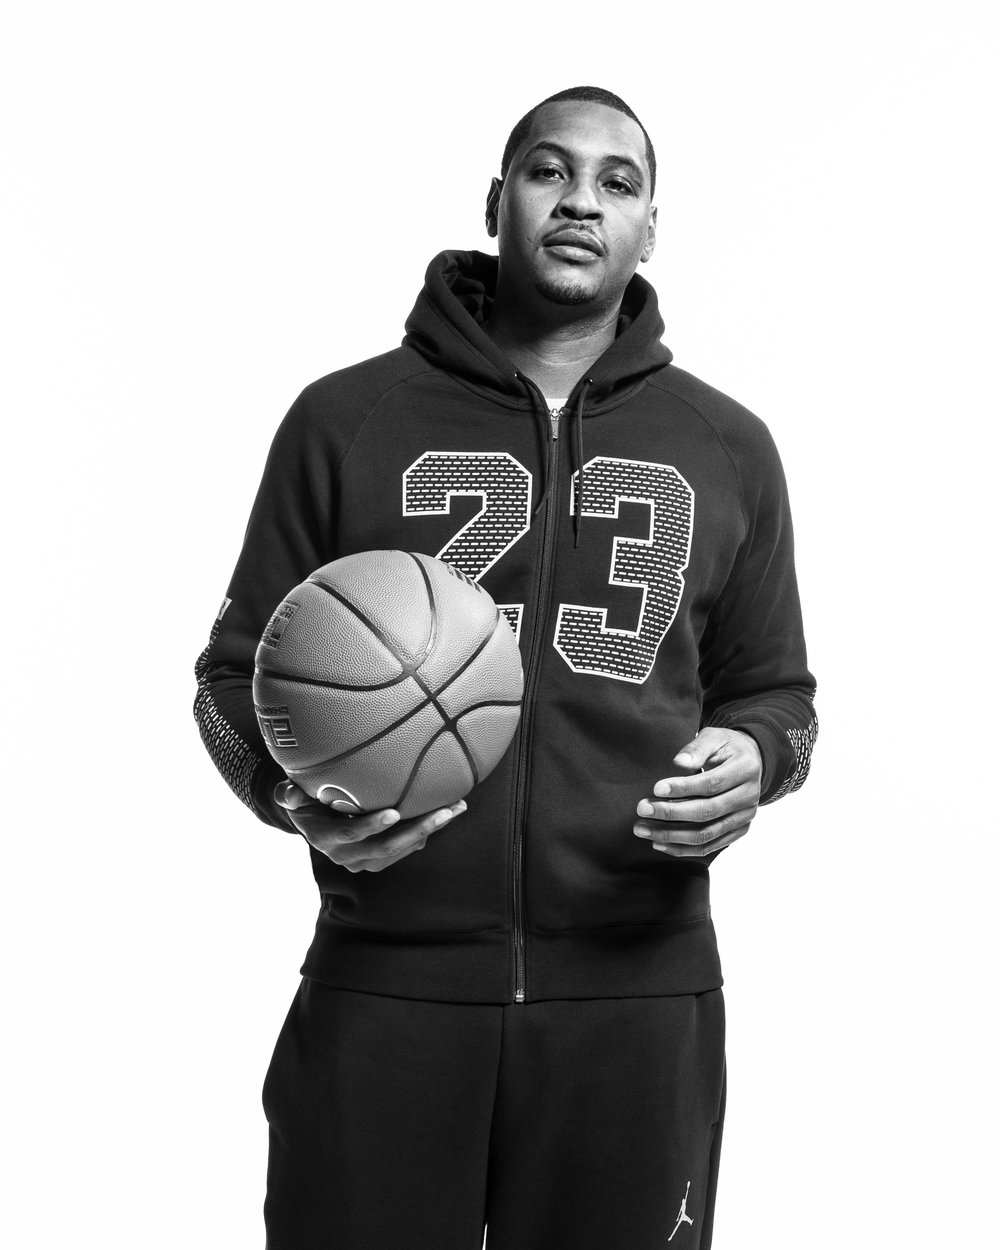 Foot_Locker_Carmelo_Anthony_119.jpg